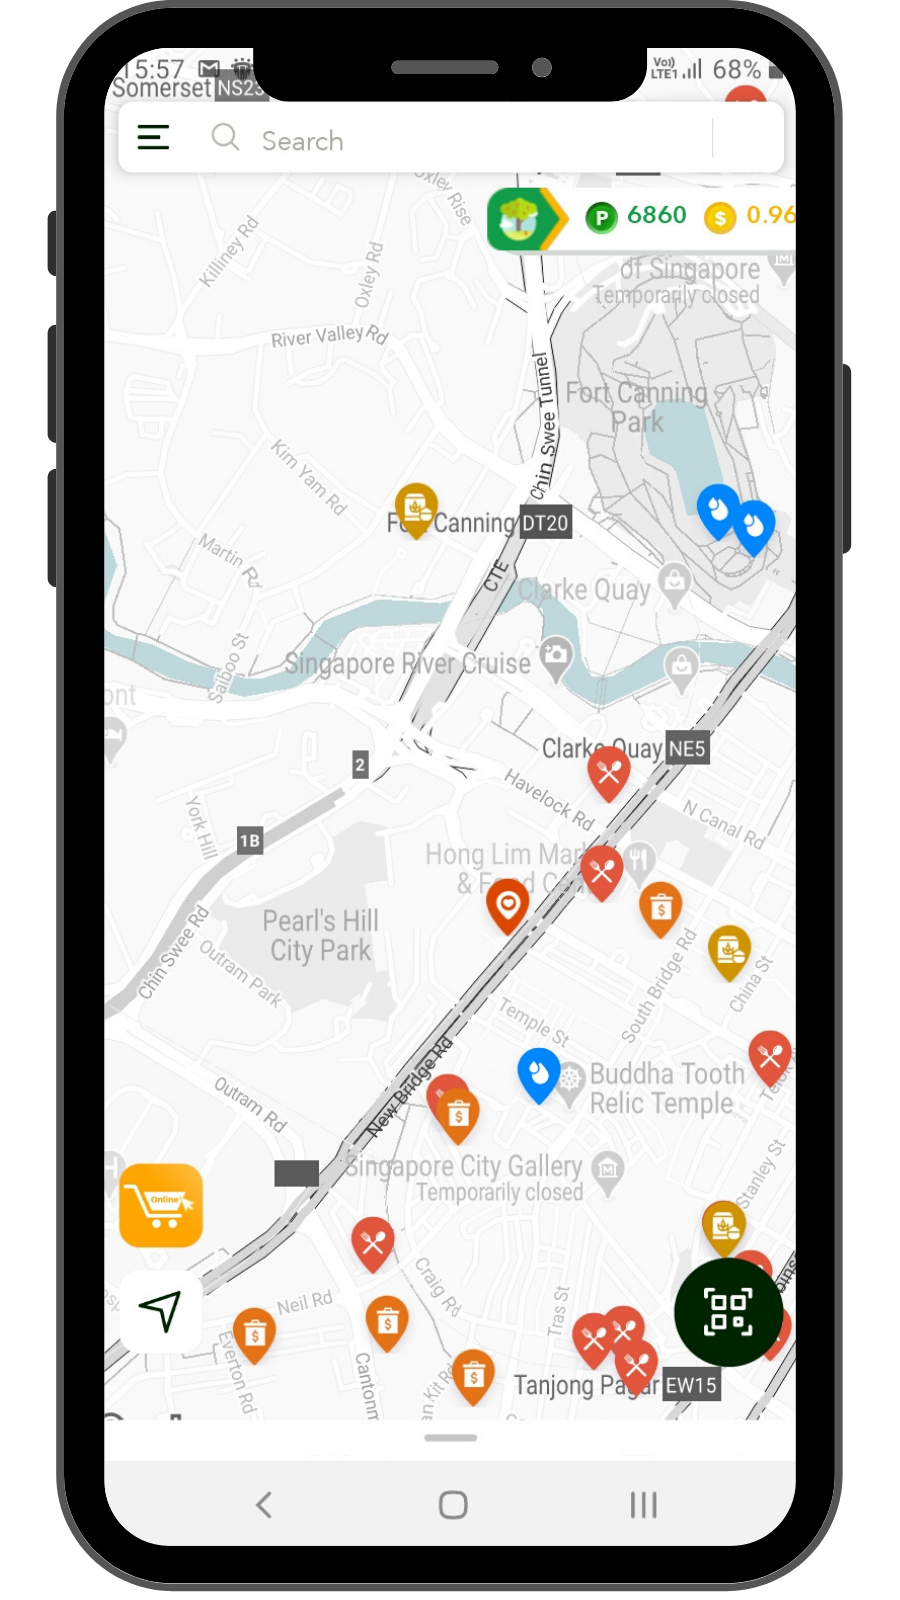 App interface showing green lifestyle options and merchants